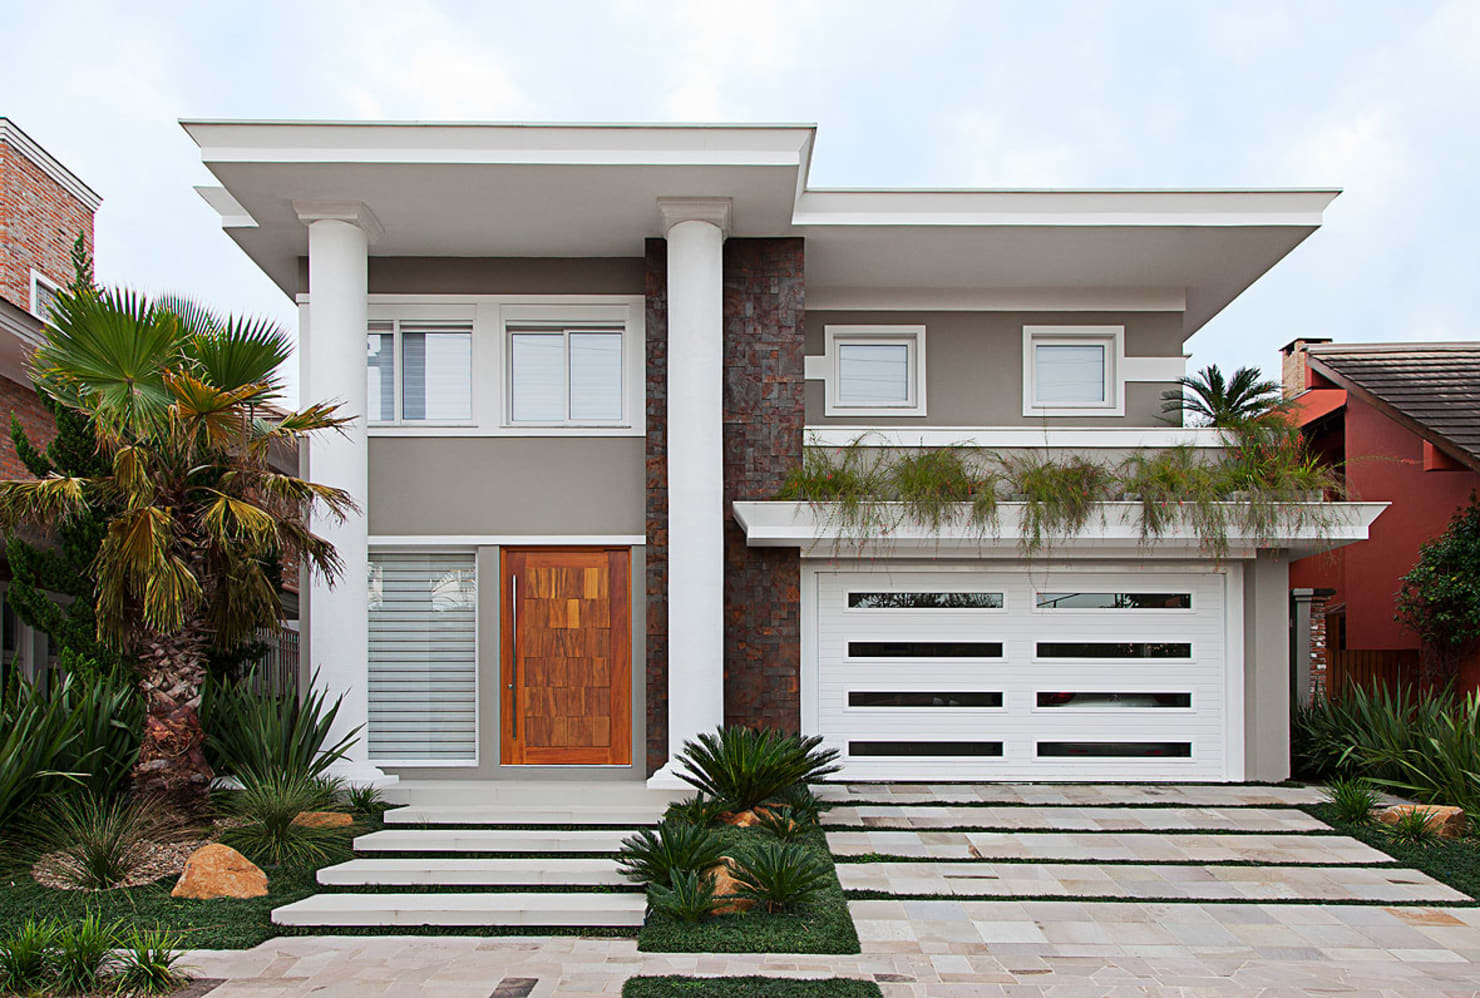 21 pictures of two-storey homes to inspire you